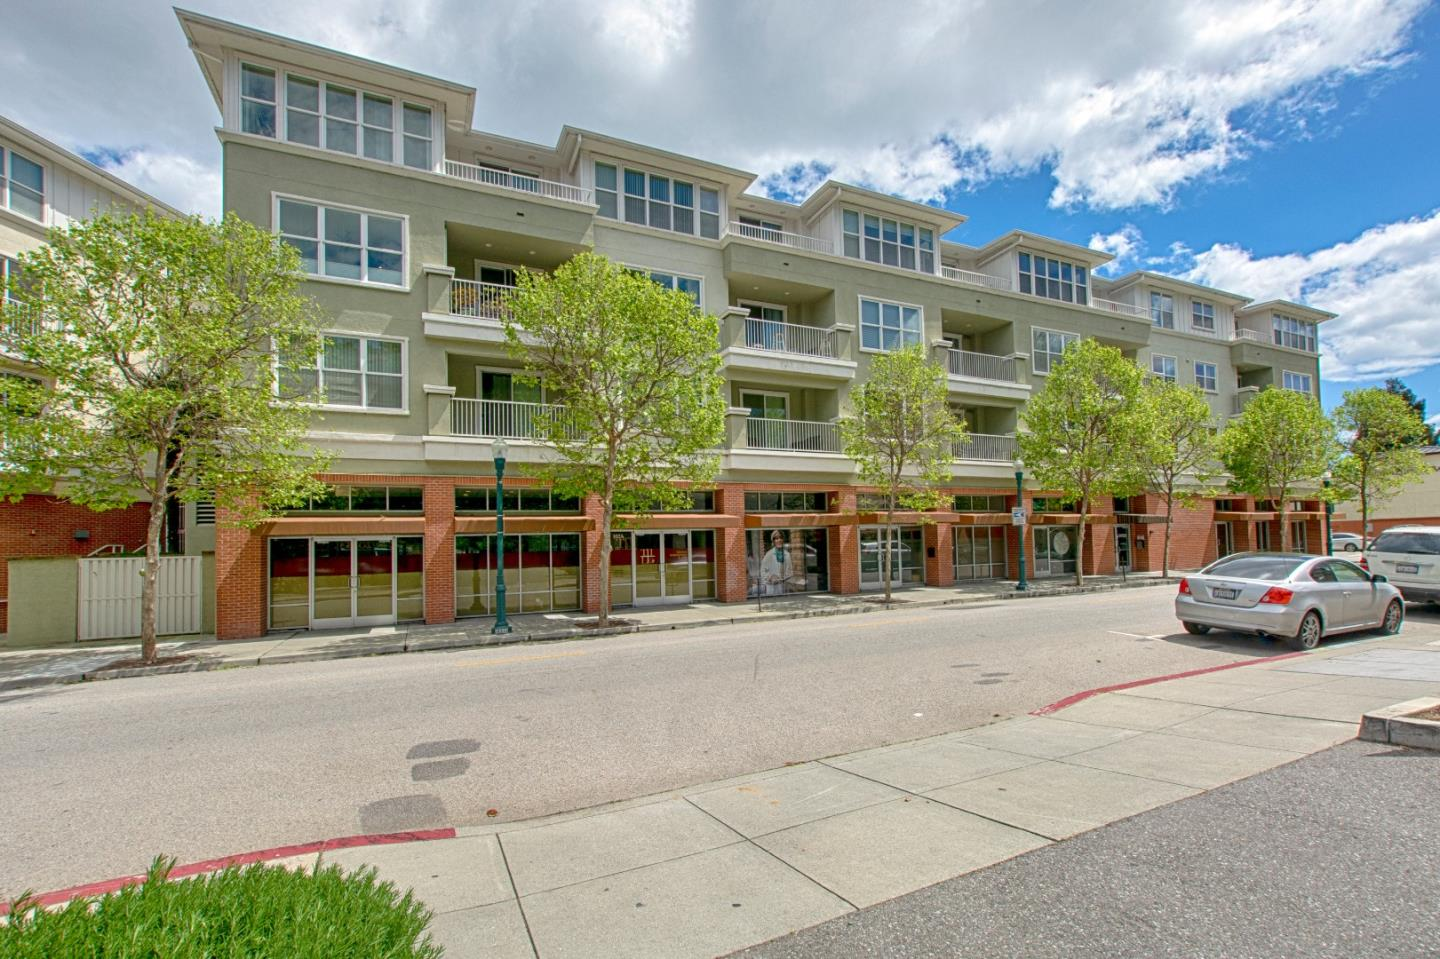 Bright, move-in ready condo located in the heart of downtown Santa Cruz!  With high ceilings, dual paned windows, bamboo flooring, and custom door screens, one can enjoy the fresh air.  The kitchen shines with stainless appliances, pantry, and granite kitchen countertop with breakfast bar. This is easy living, with elevator access, in-unit laundry, community pool and gym, and secured parking. Location can't be beat for walking everywhere downtown! Great commute location as well as quick bike ride away to the sunny, Santa Cruz beaches!